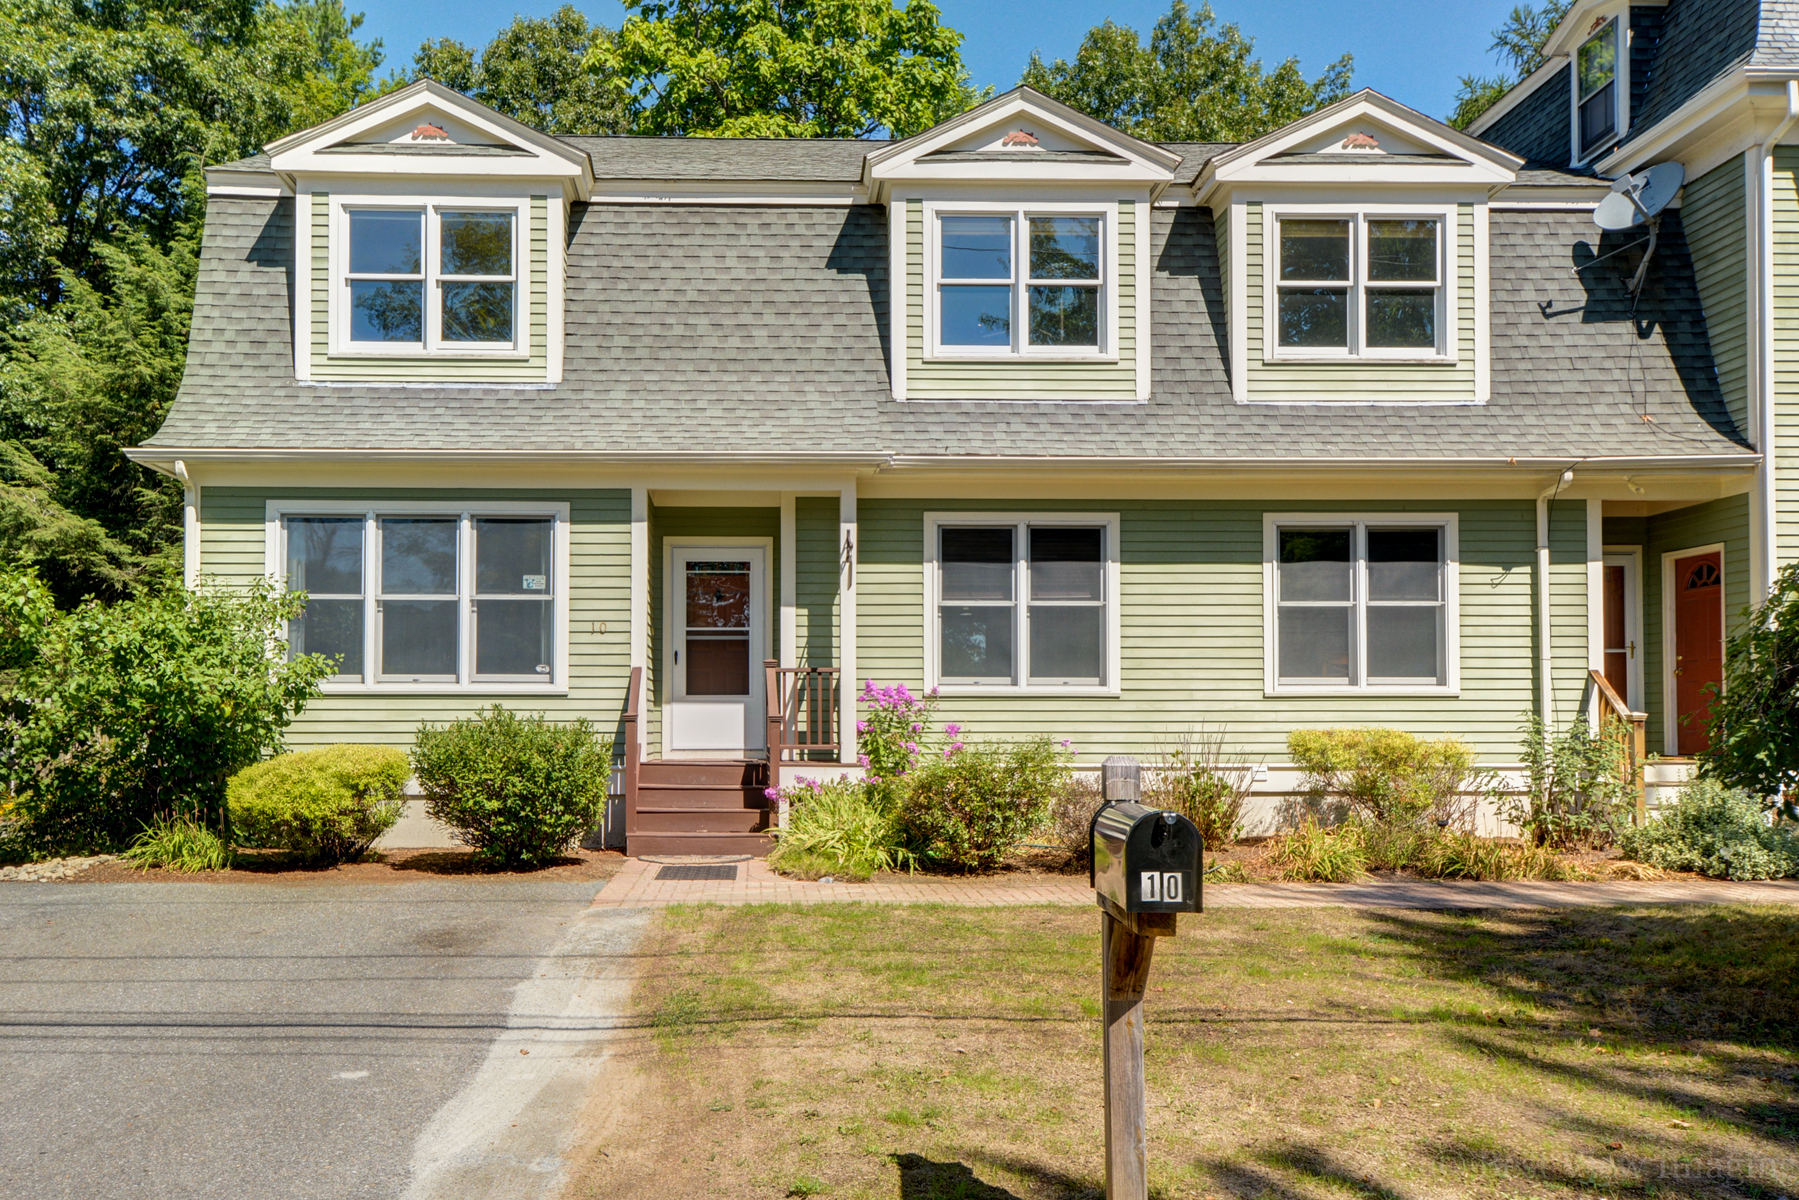 Single Family Home for Sale at One of a kind stylish home is available for the first time in popular West Conco 10 Highland St Concord, Massachusetts, 01742 United States